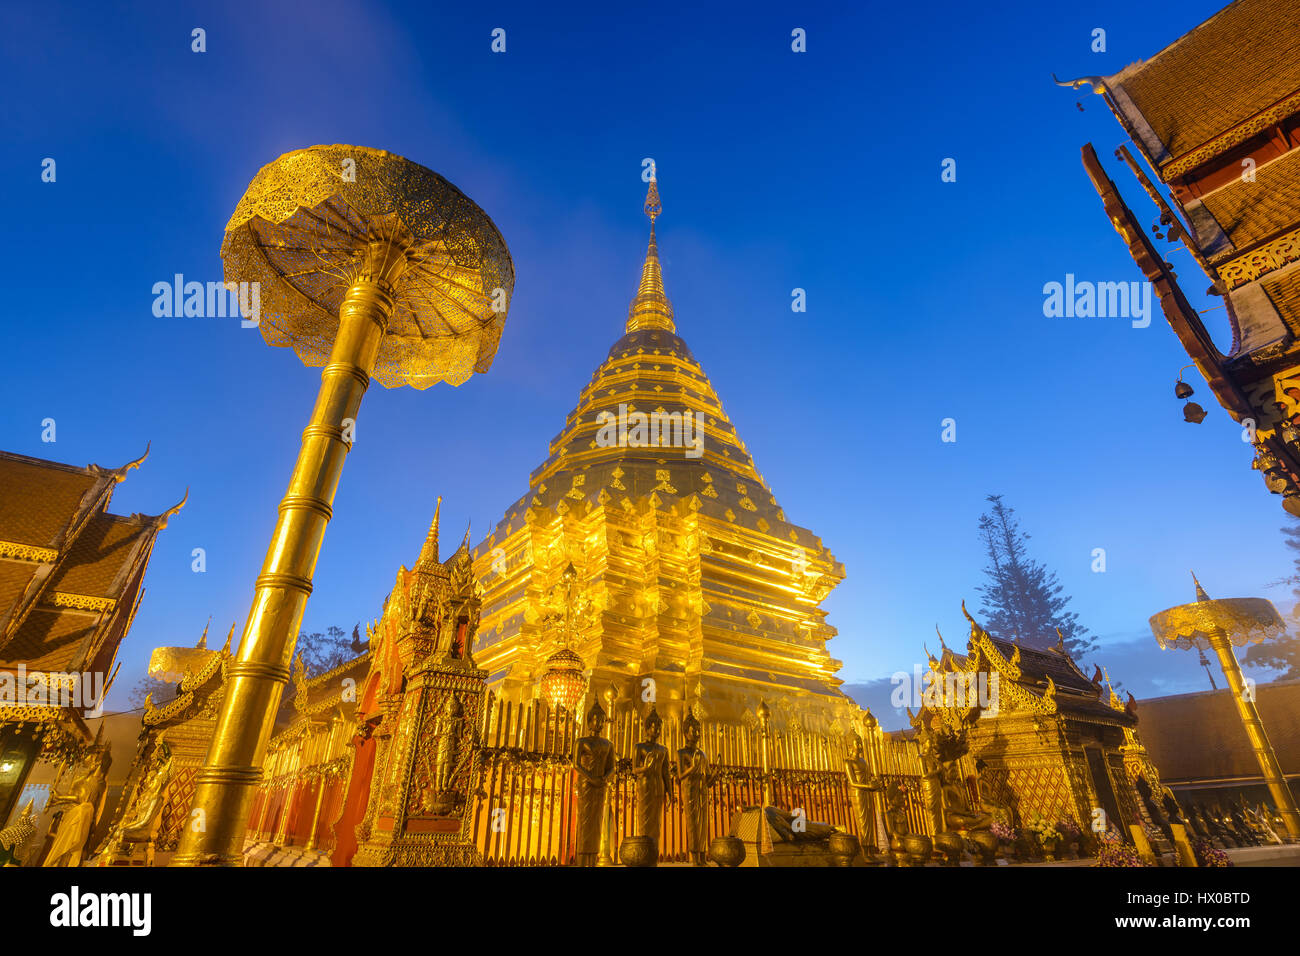 Wat Phra That Doi Suthep at night, Chiang mai, Thailand (public temple no ticket fee) - Stock Image